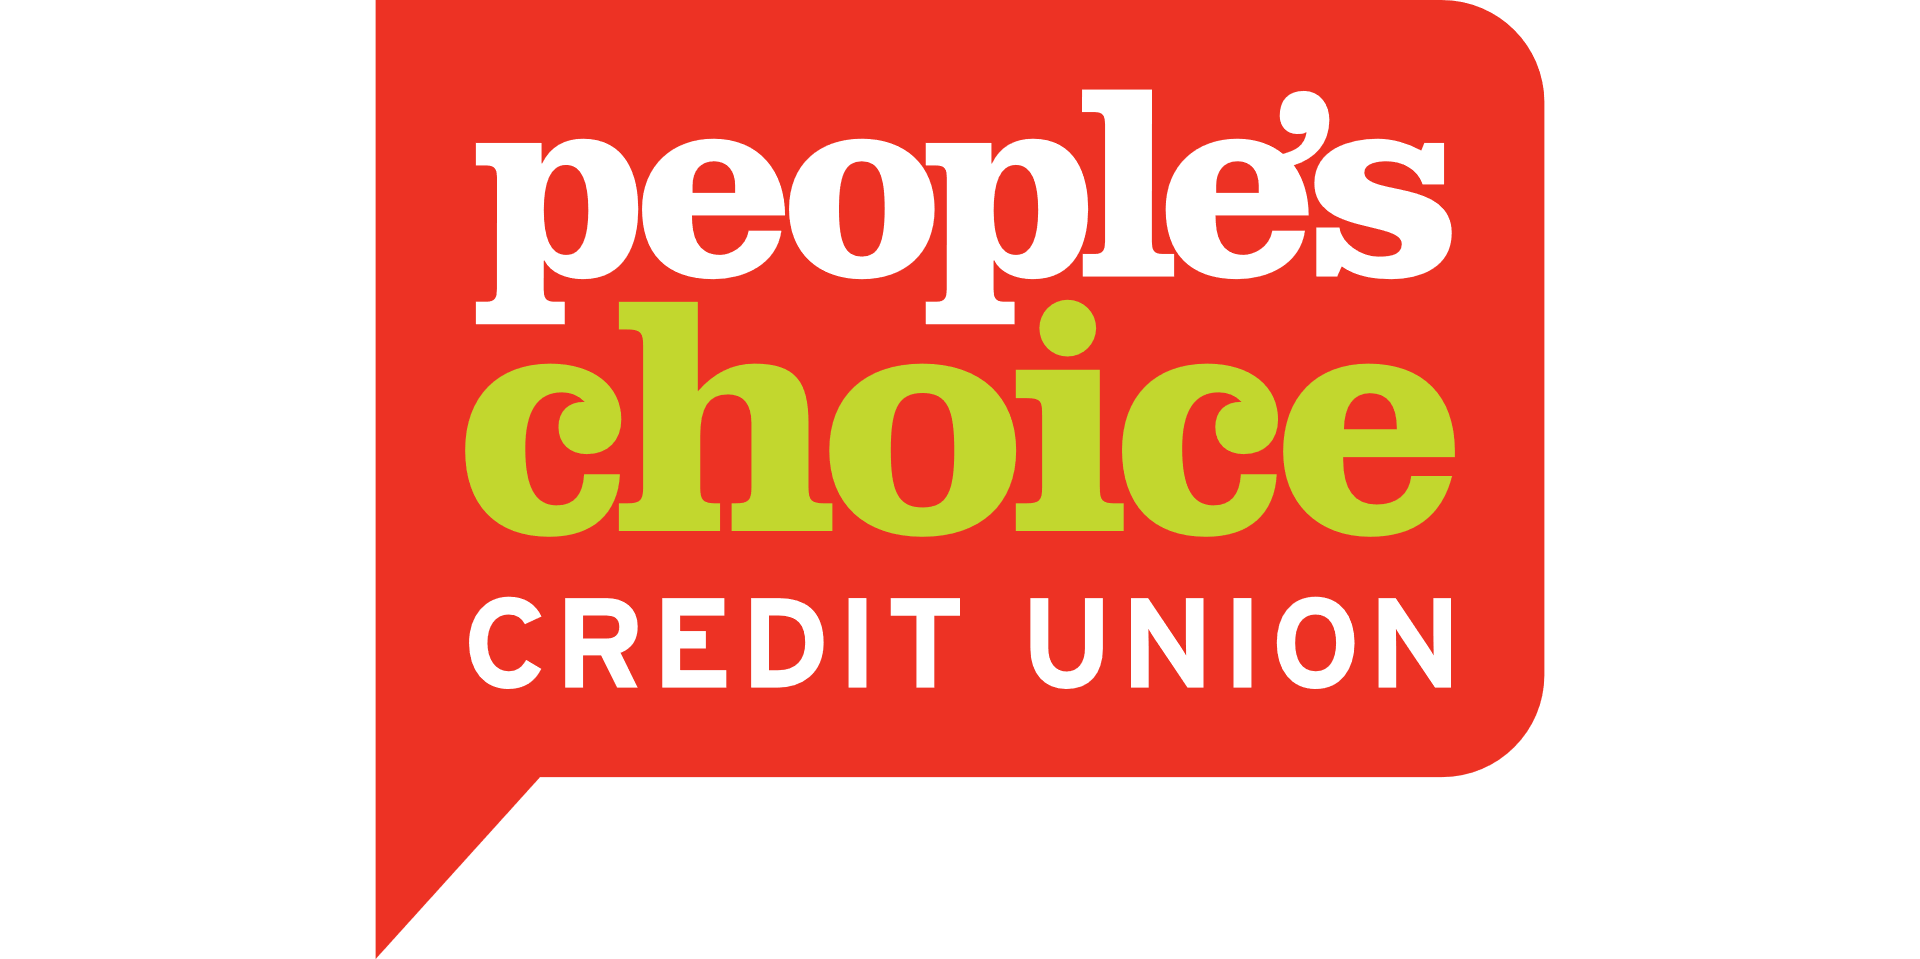 People's Choice Credit Union - Victor Harbor, SA 5211 - (01) 3118 1182 | ShowMeLocal.com